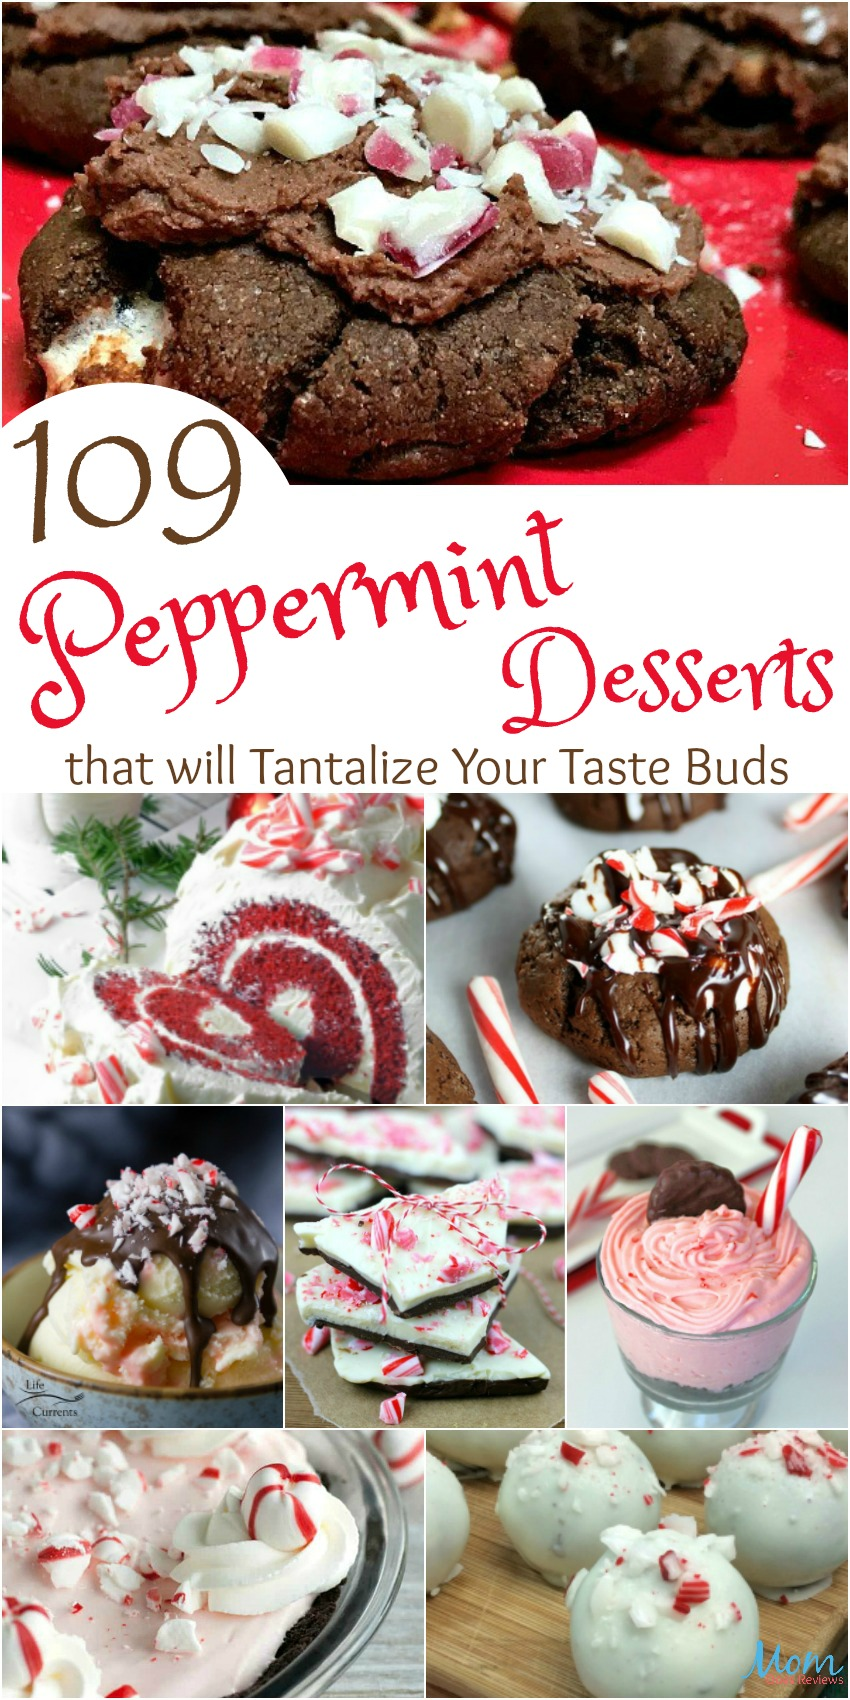 109 Peppermint Desserts that will Tantalize Your Taste Buds #recipes #desserts #sweets #peppermint #yummy